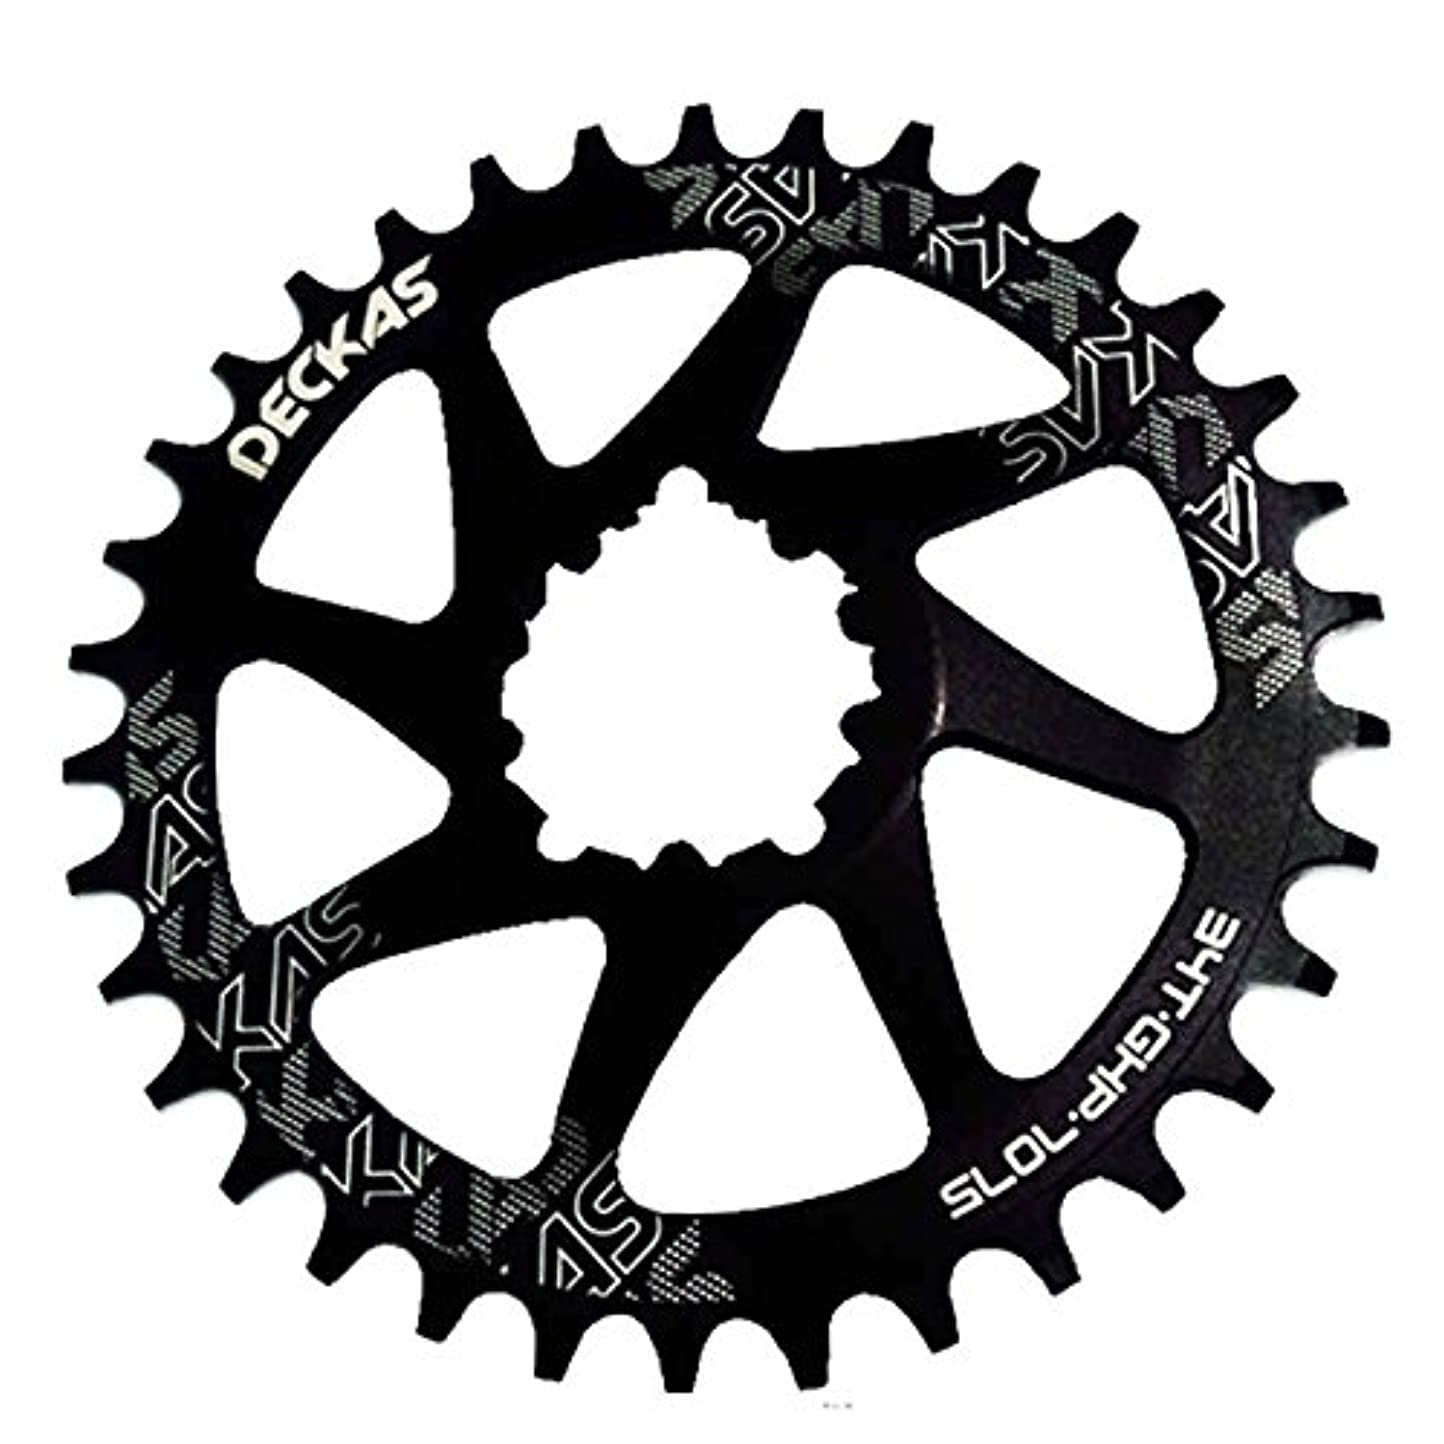 つぼみ戸棚ピーブPropenary - GXP bicycle crankset Al 7075 CNC32T 34T Narrow Wide Chainring Chainwheel for Sram XX1 XO1 X1 GX XO X9 crankset bicycle parts [ 38T Black ]